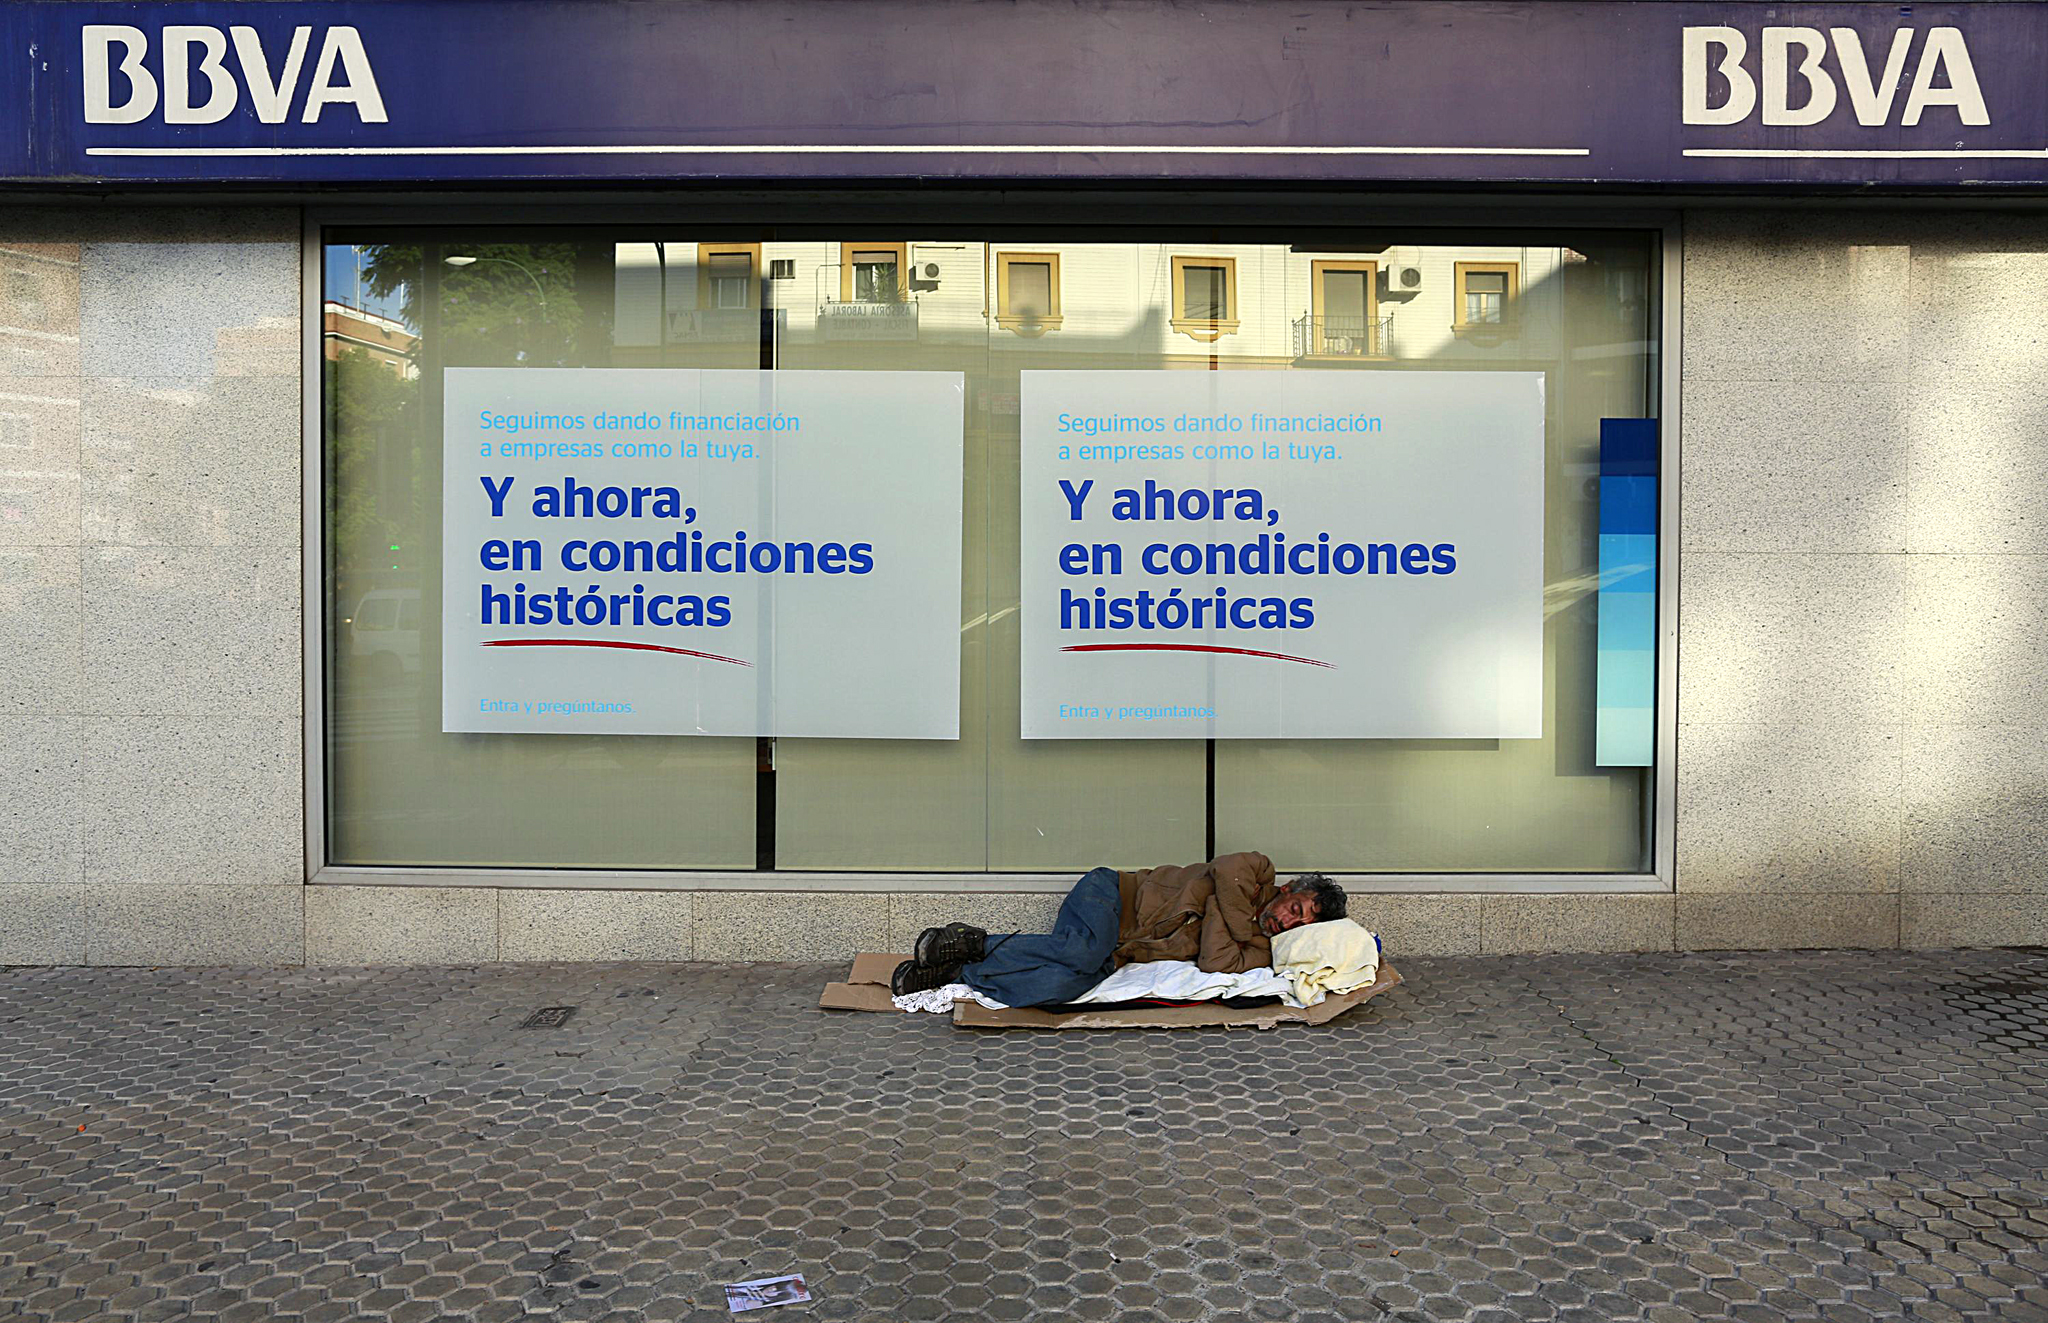 "A homeless man sleeps on the pavement outside a BBVA bank branch in the Andalusian capital of Seville...A homeless man sleeps on the pavement outside a BBVA bank branch in the Andalusian capital of Seville, southern Spain October 30, 2014. The advertisement poster reads ""We continue to provide financing to companies like yours. And now, in historical terms. Come in and ask.""  REUTERS/Marcelo del Pozo (SPAIN - Tags: SOCIETY BUSINESS)"